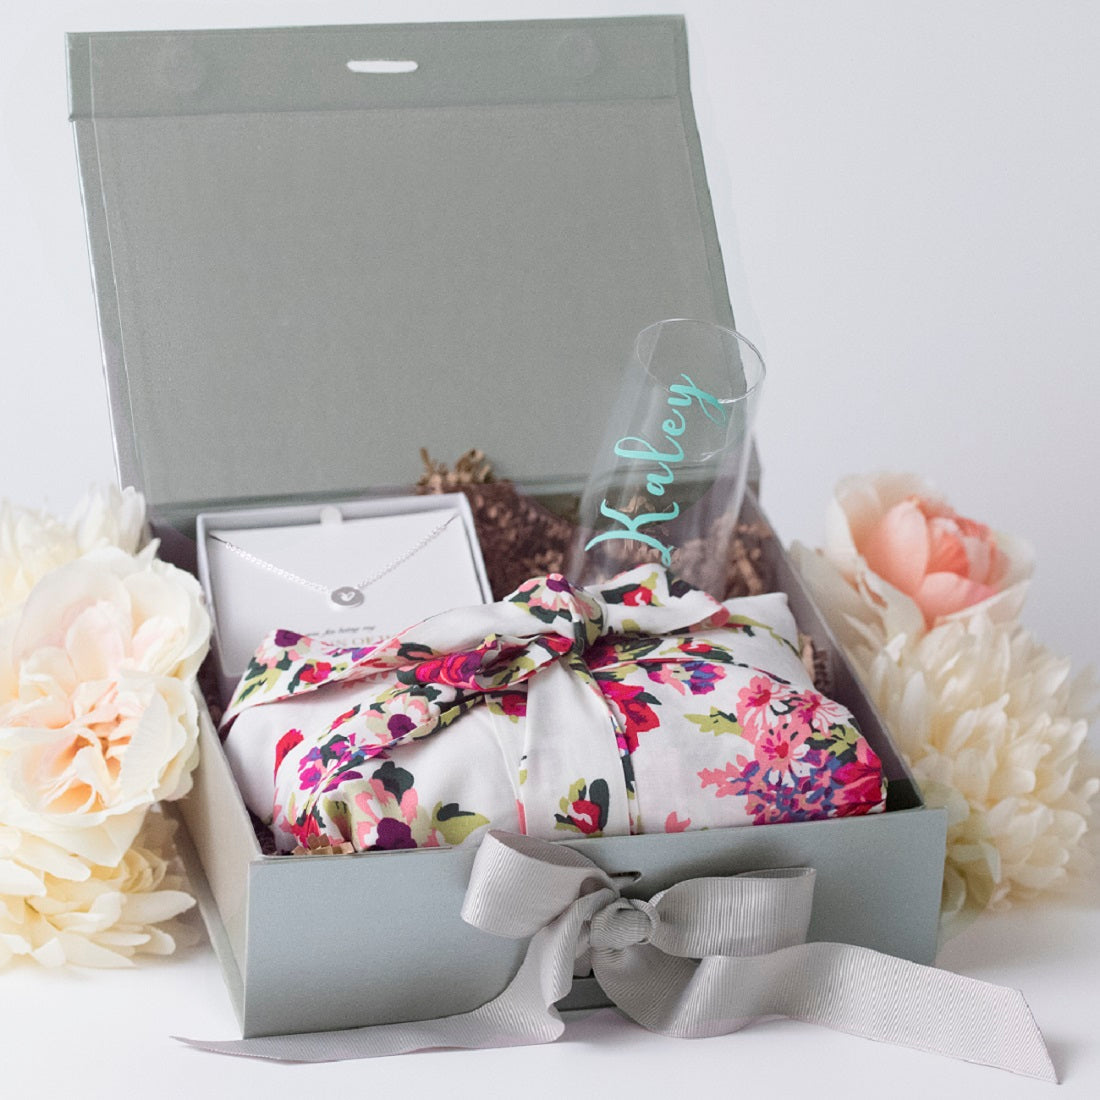 Shimmer Dreams Gift Box Set